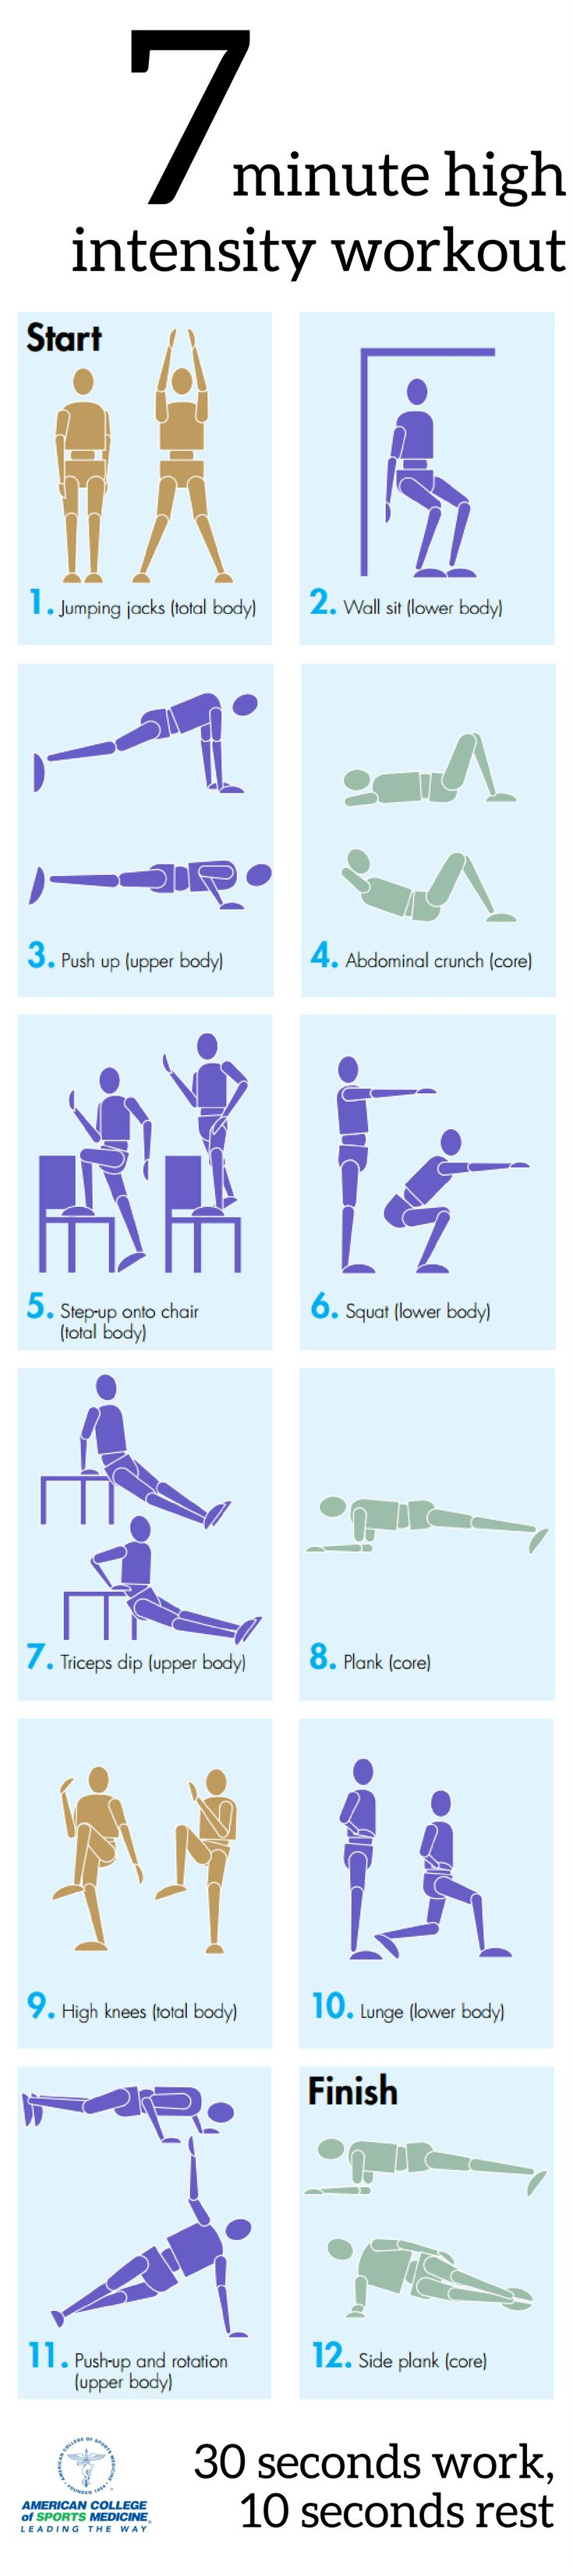 38 best Exercise and Fitness images on Pinterest   Exercise workouts ...